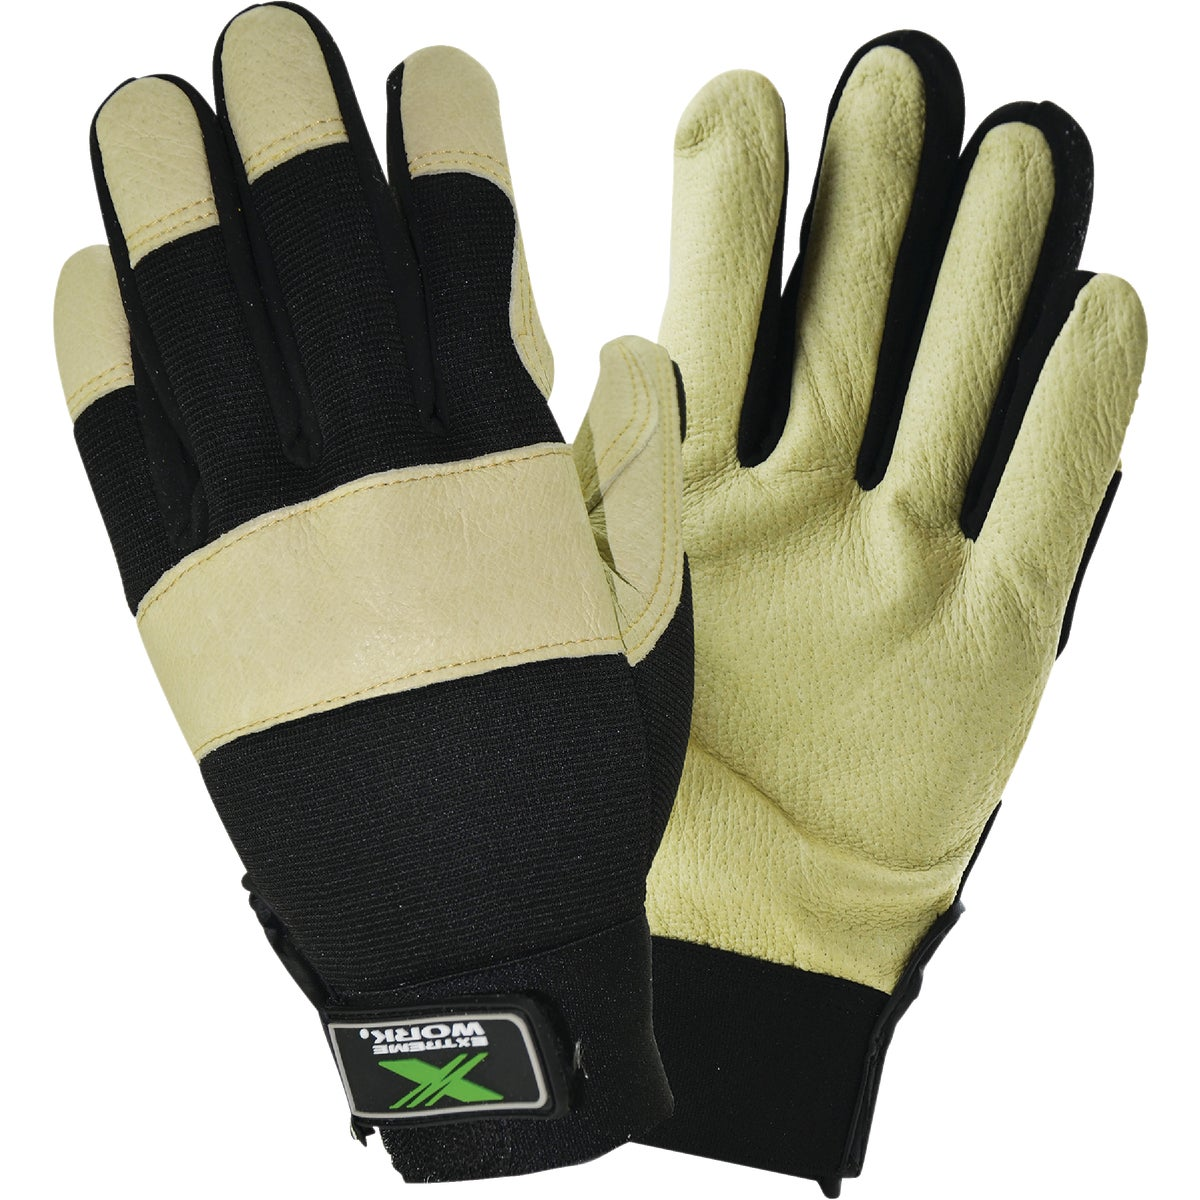 LRG GRAIN PIGSKIN GLOVE - 3214L by Wells Lamont